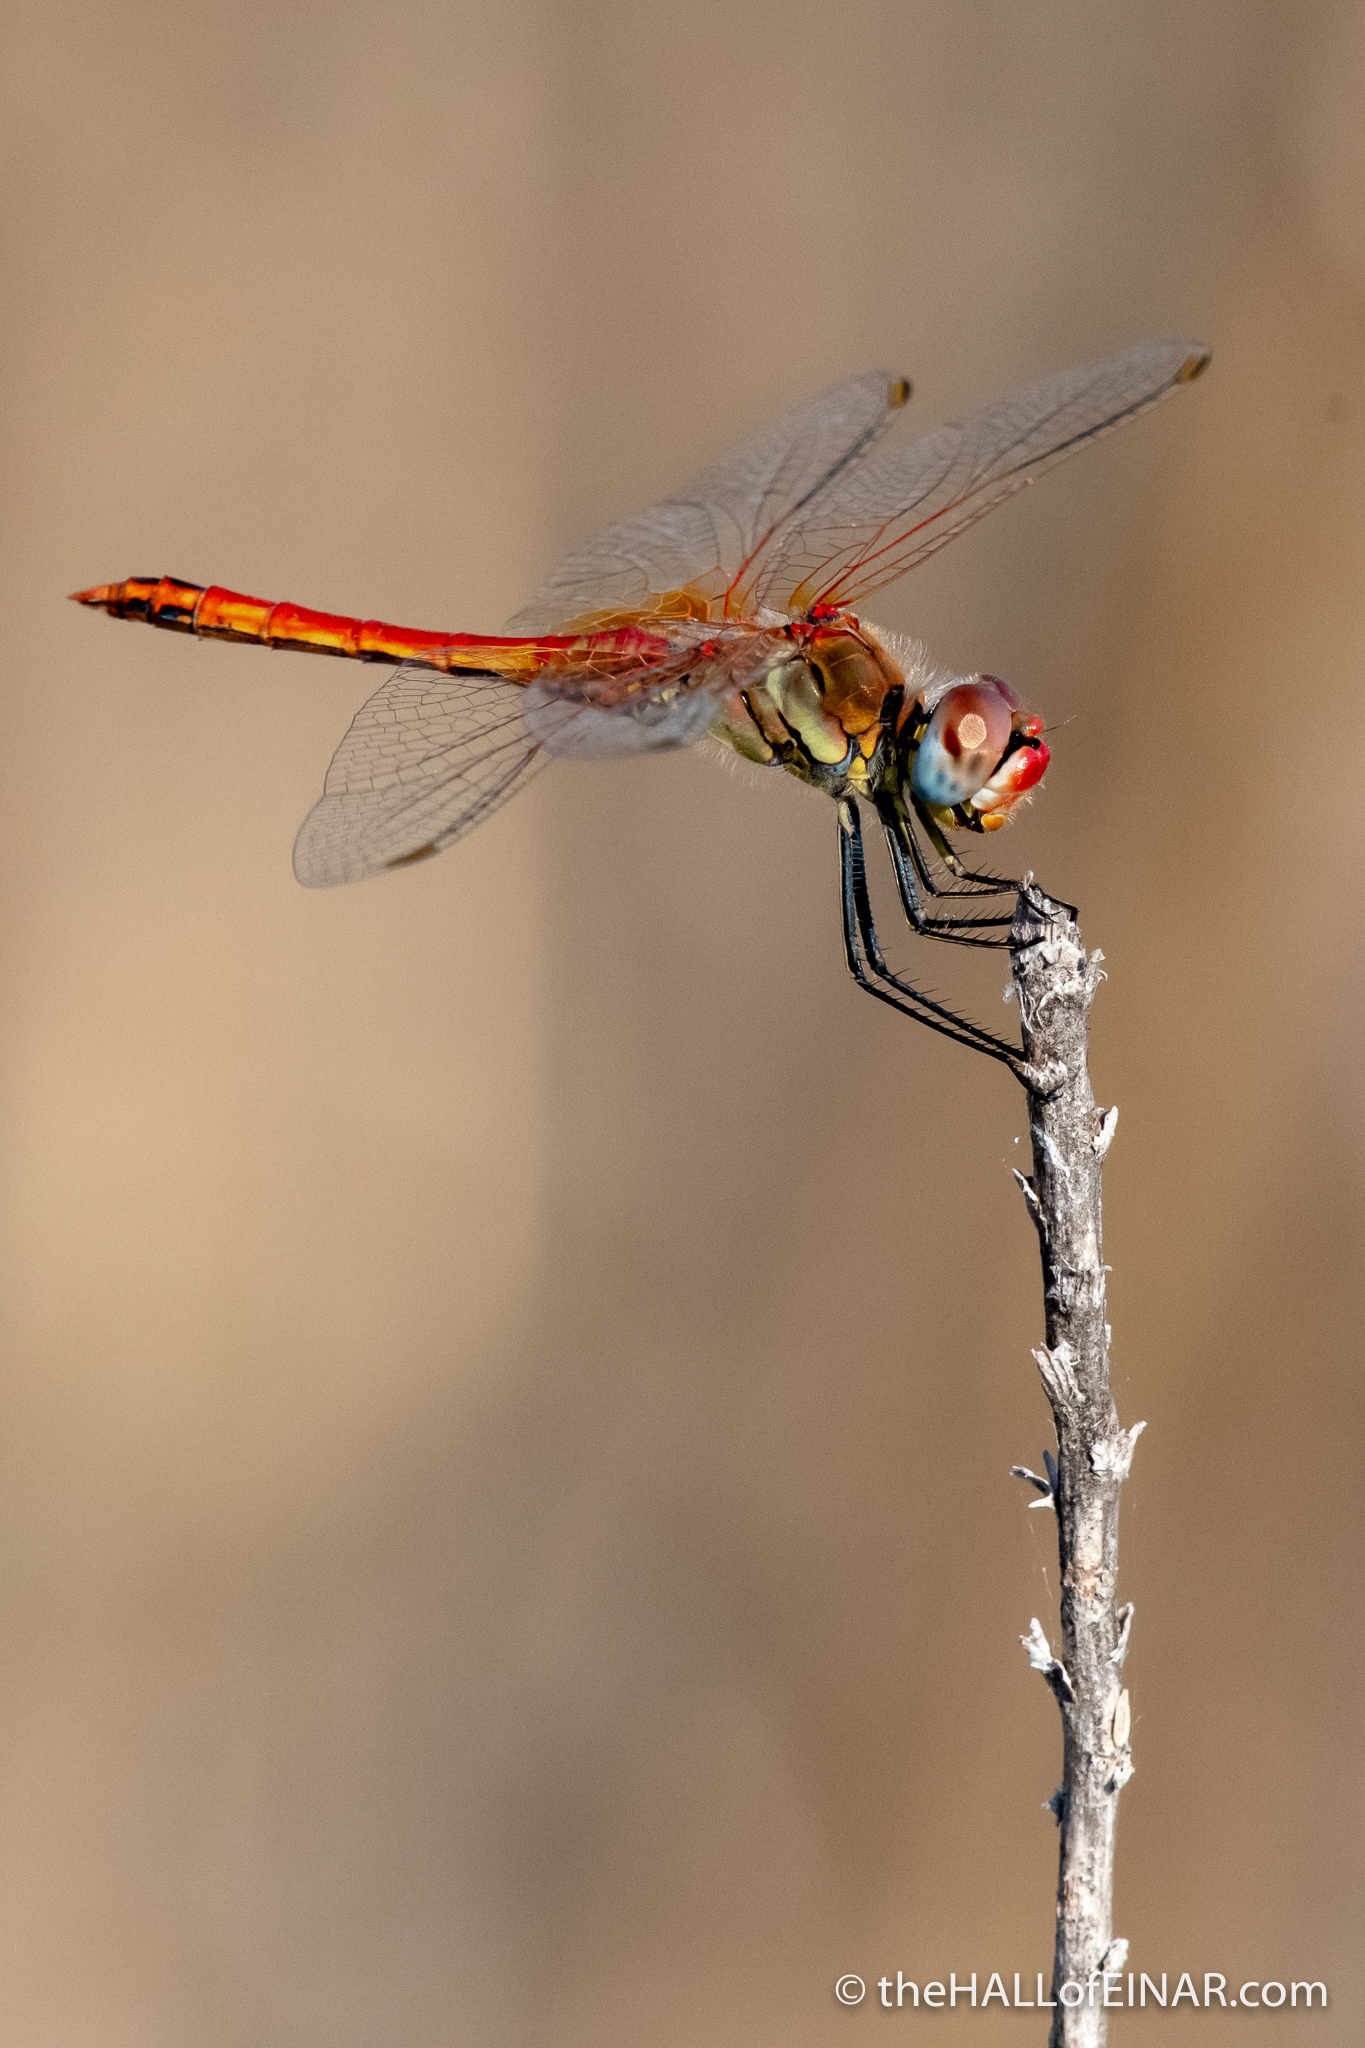 Red-Veined Darter Dragonfly - The Hall of Einar - photograph (c) David Bailey (not the)